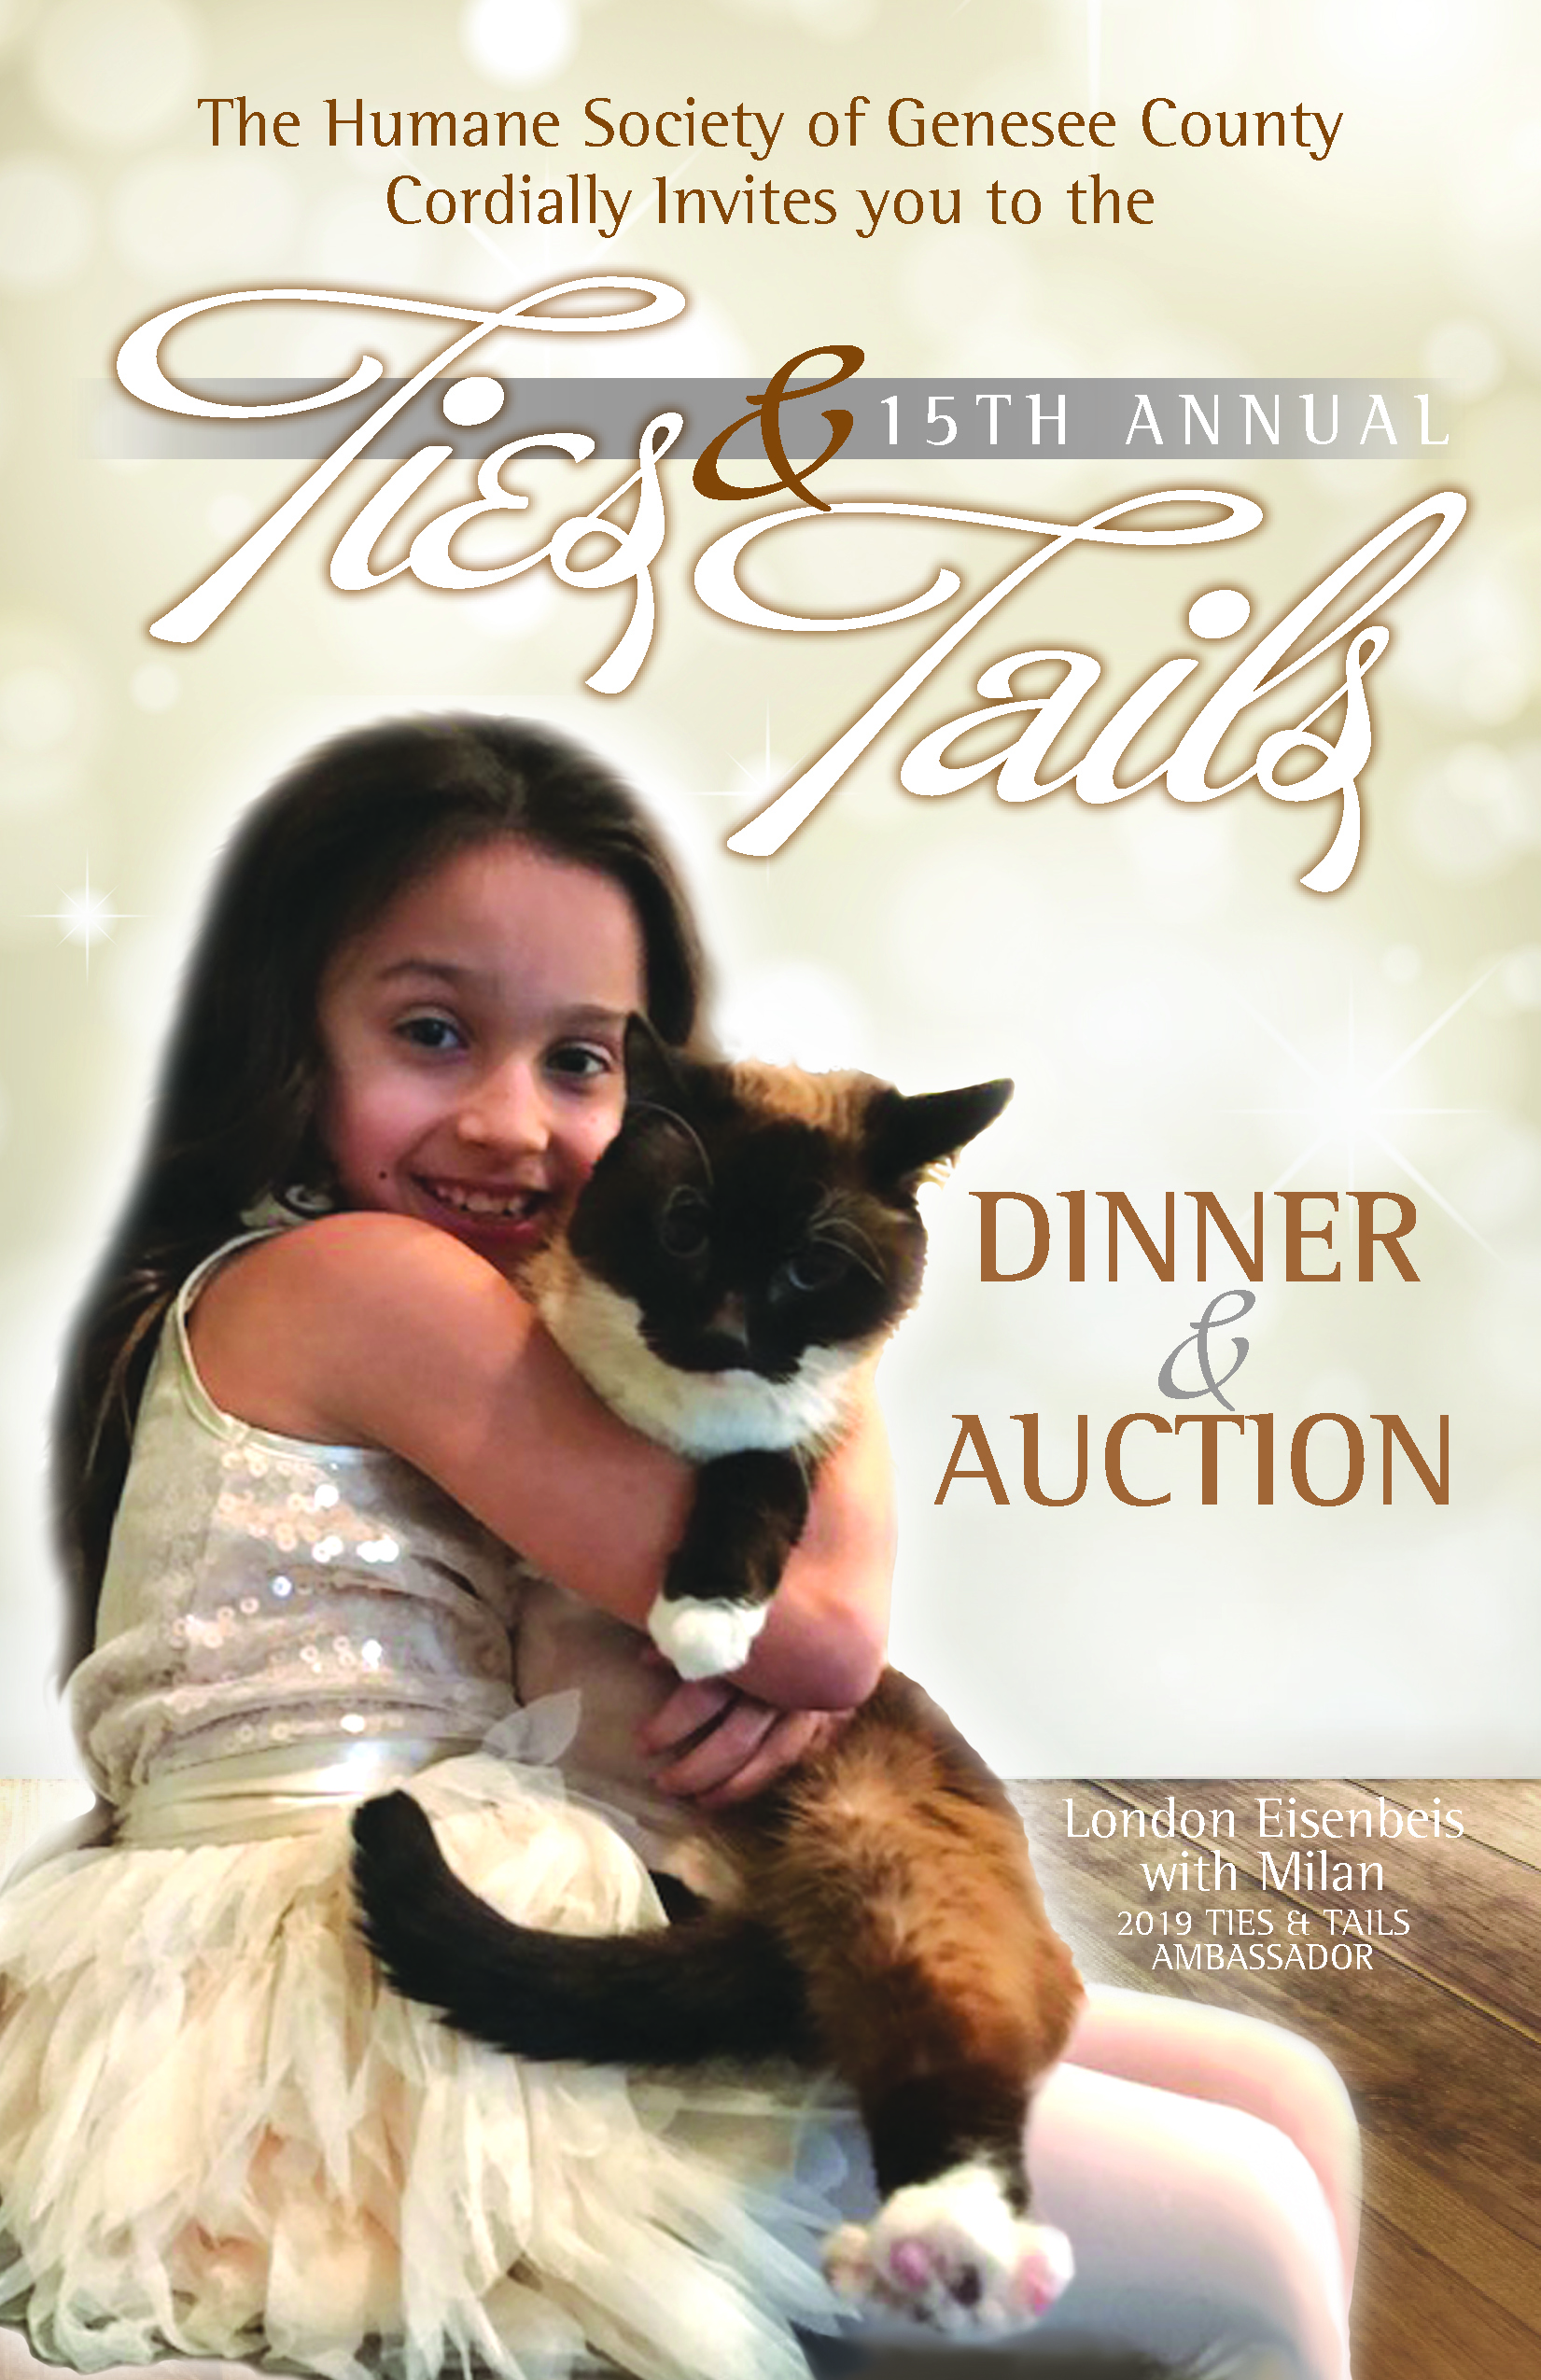 LIVE AUCTION-Ties & Tails Pet Ambassador 2020